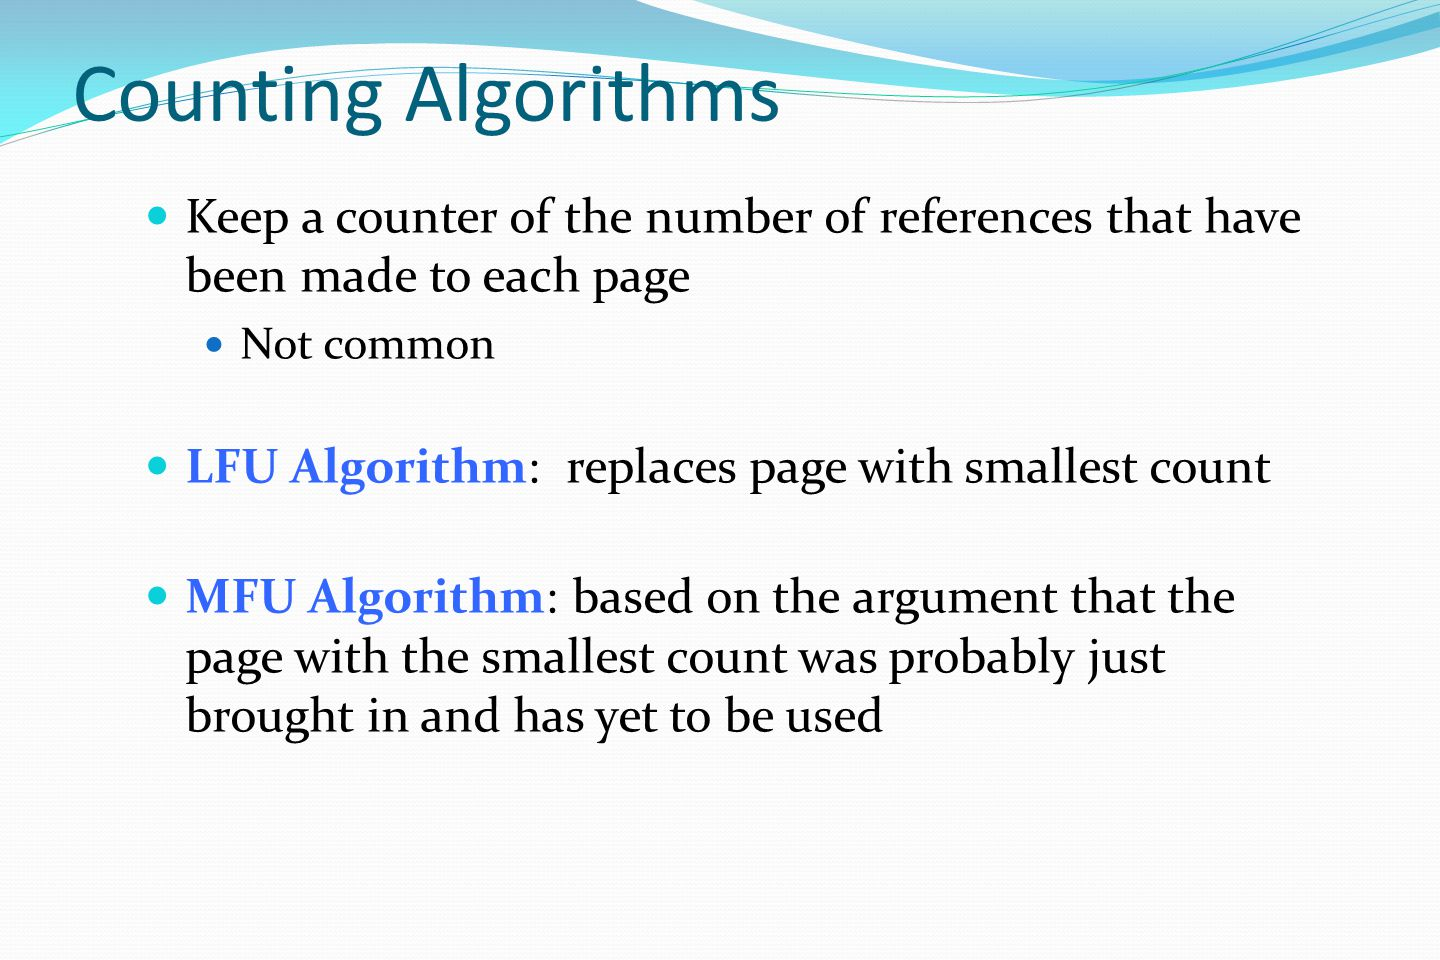 Counting Algorithms Keep a counter of the number of references that have been made to each page. Not common.